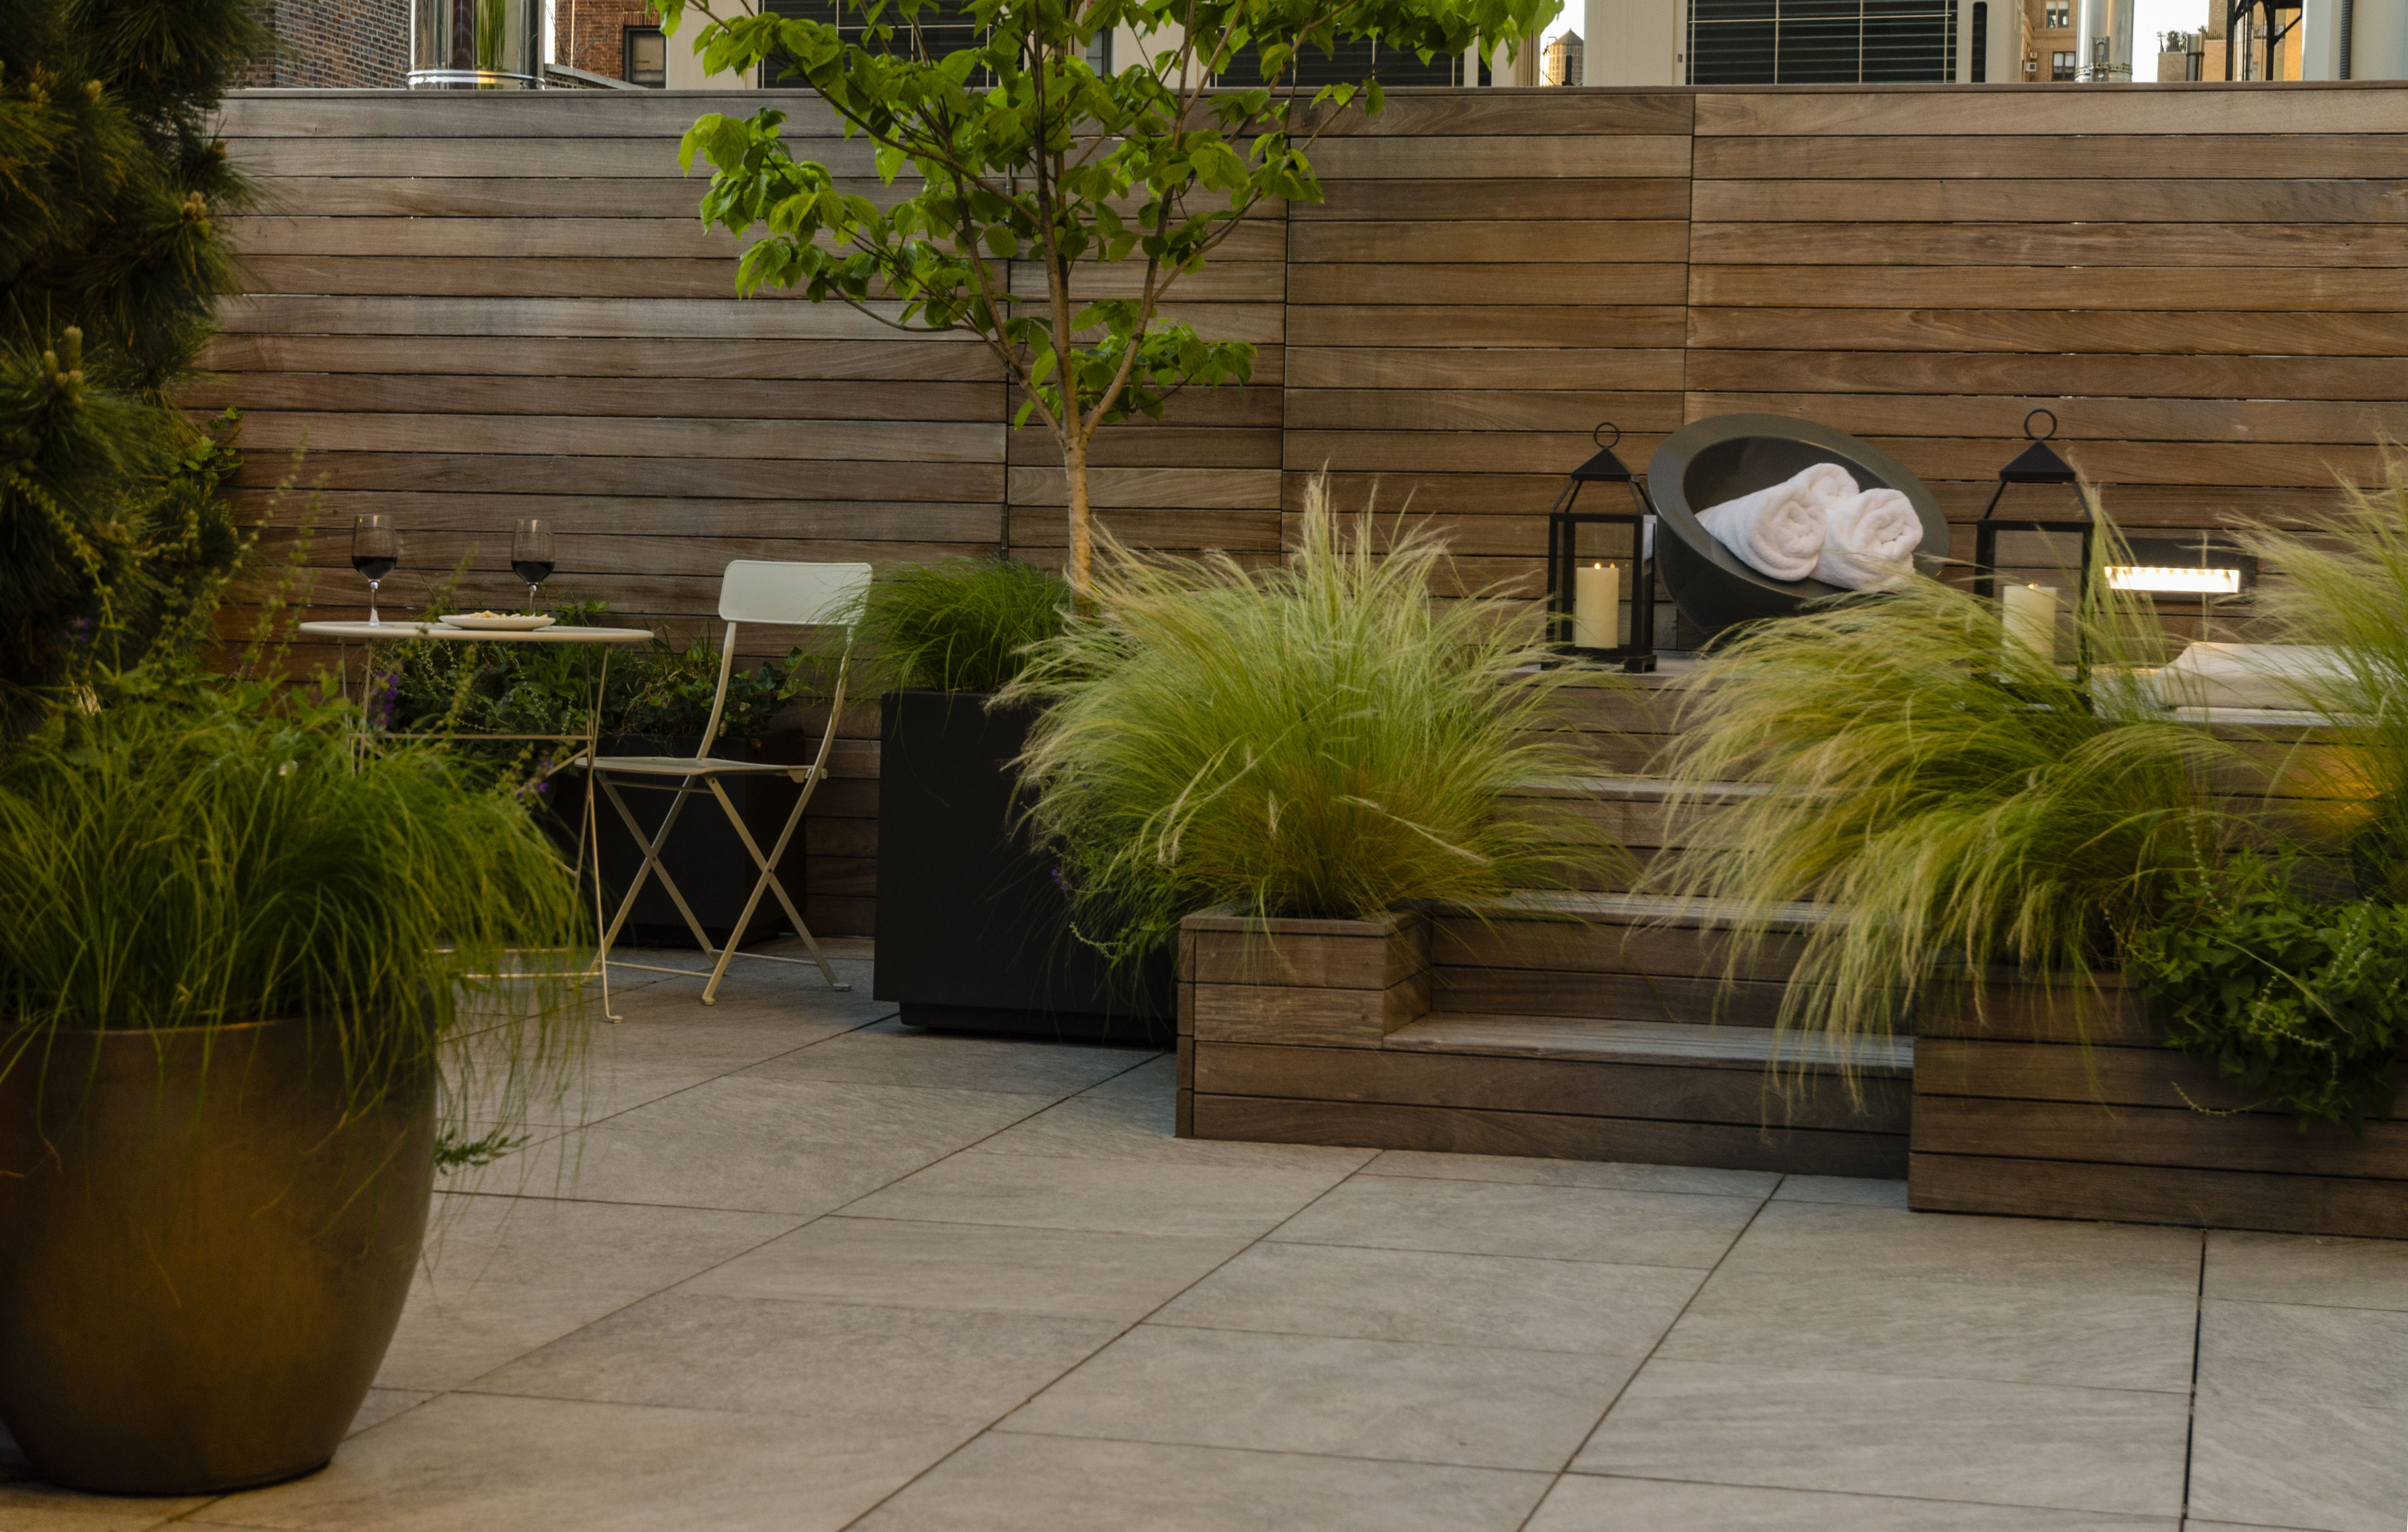 Landscape And Spa Design, Upper West Side, Ny By Gunn